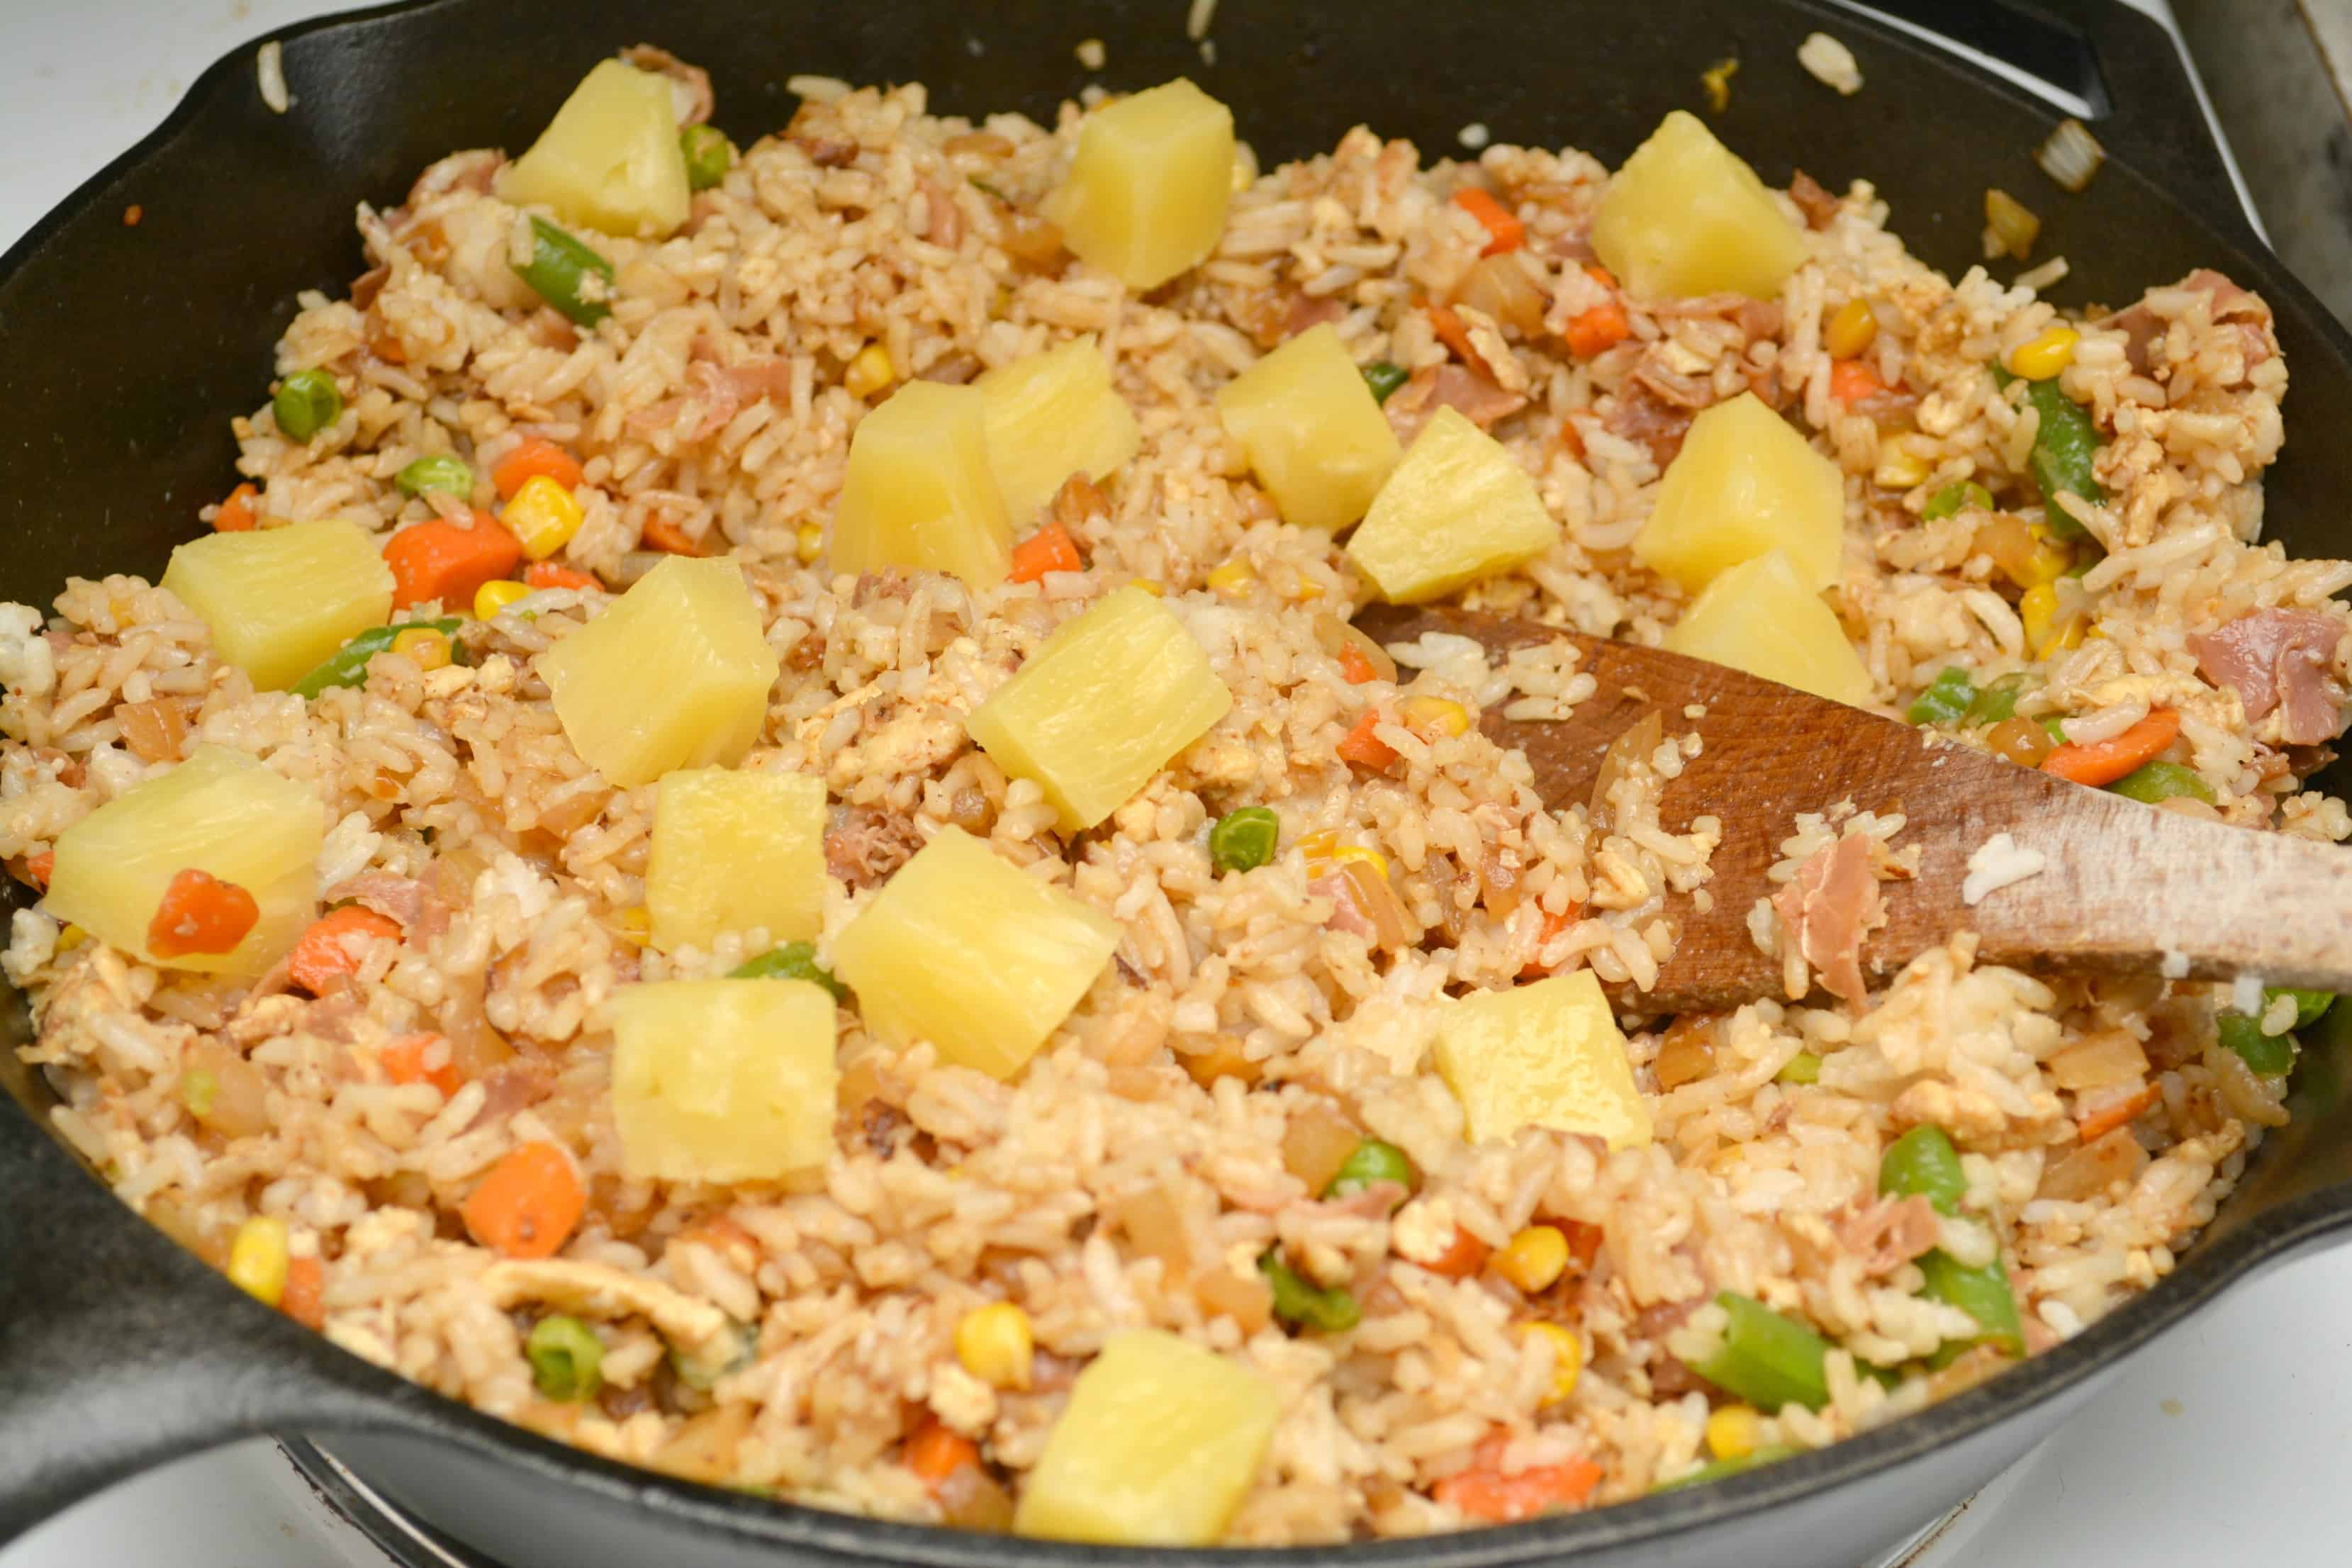 pineapple on top of fried rice